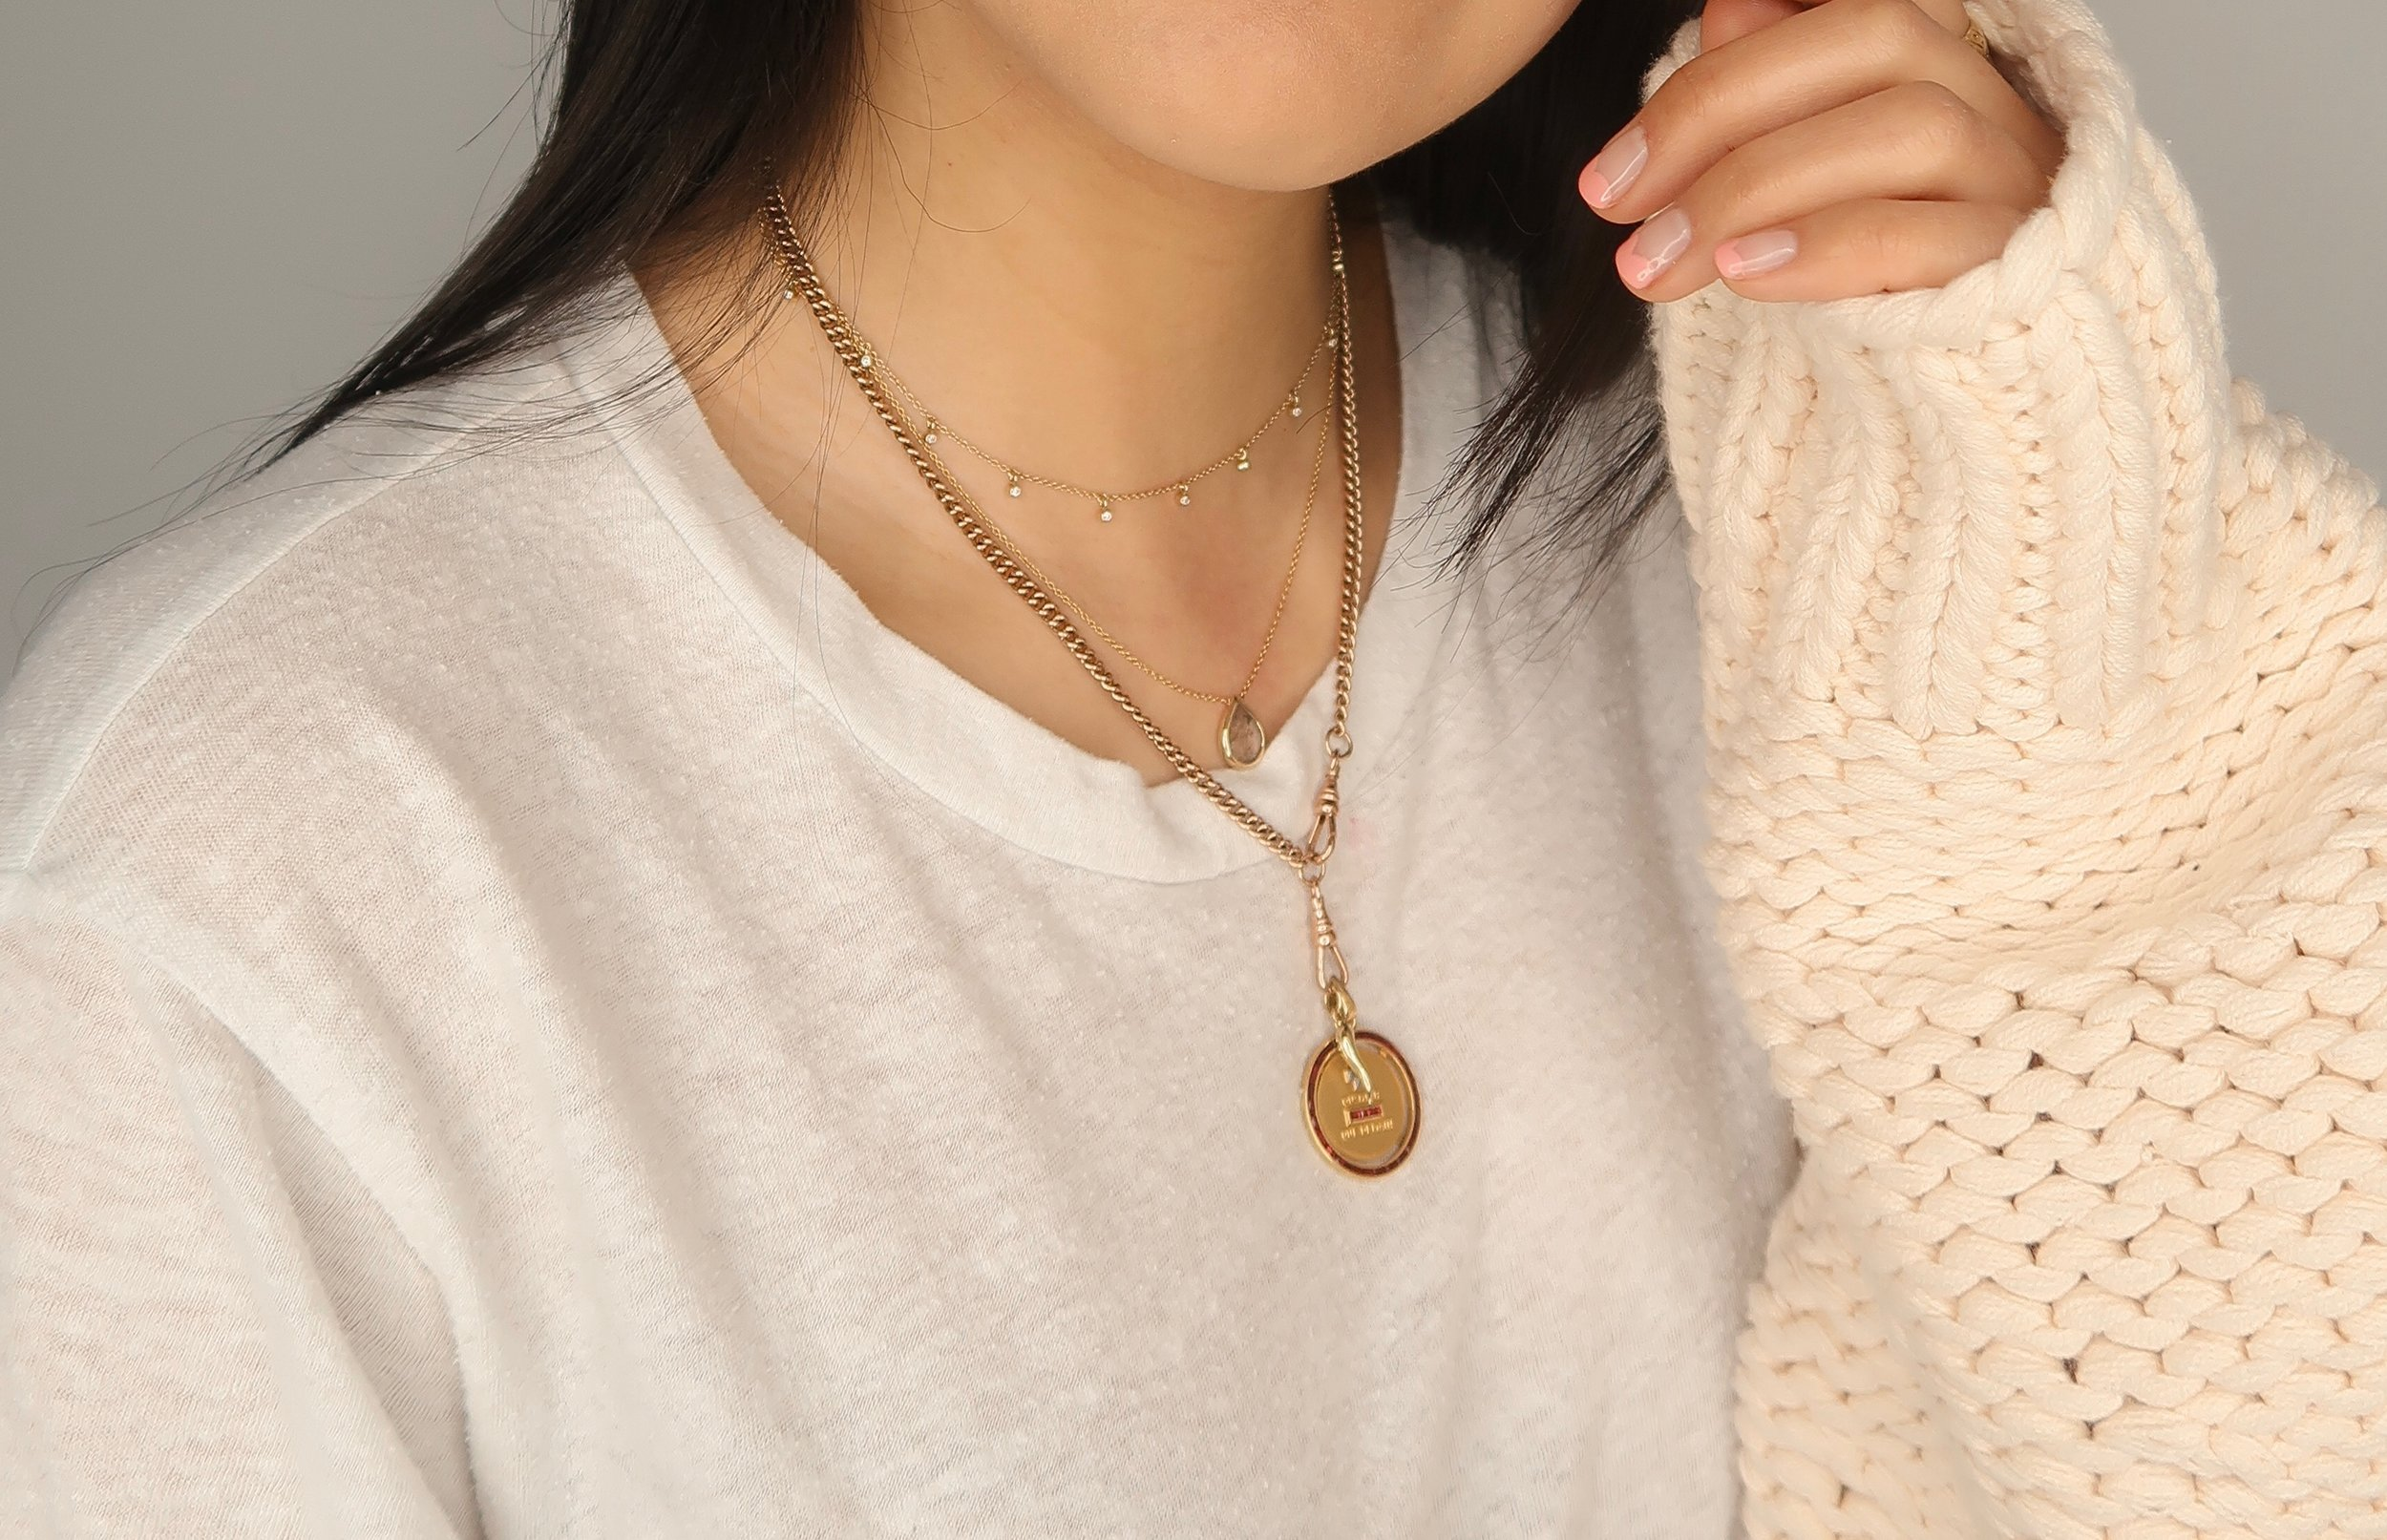 zoe chicco necklace - the perfect layering piece